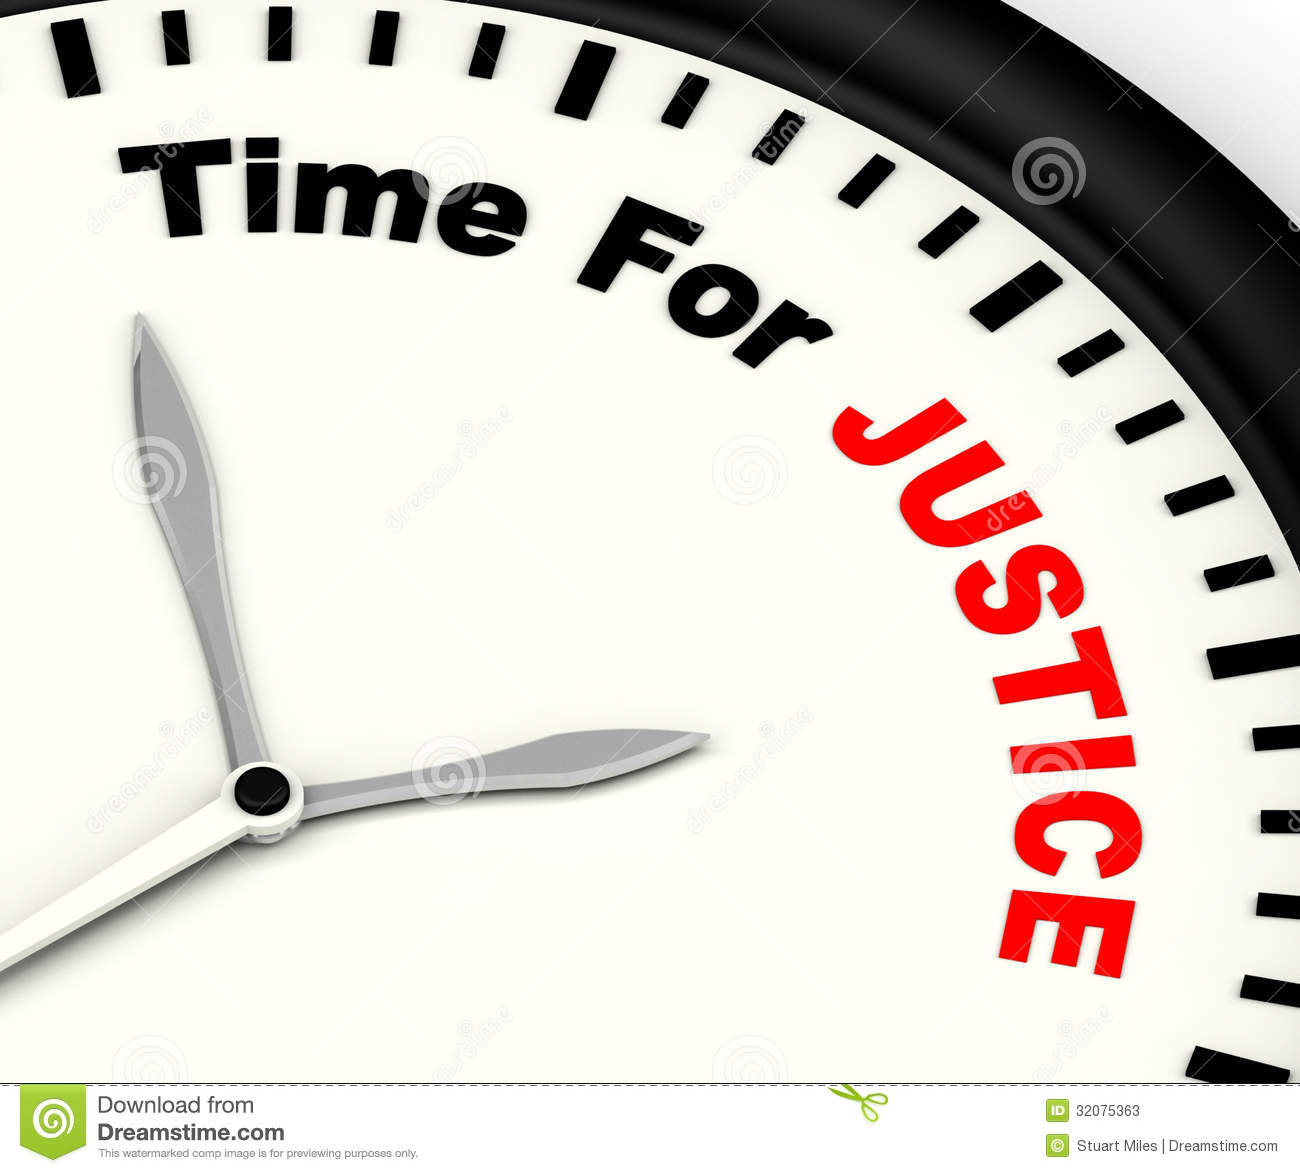 an analysis of the significance of capital punishment in the criminal justice system Journal of ethnicity in criminal justice and disposition decisions in juvenile justice system yet the vast majority of research on capital punishment.